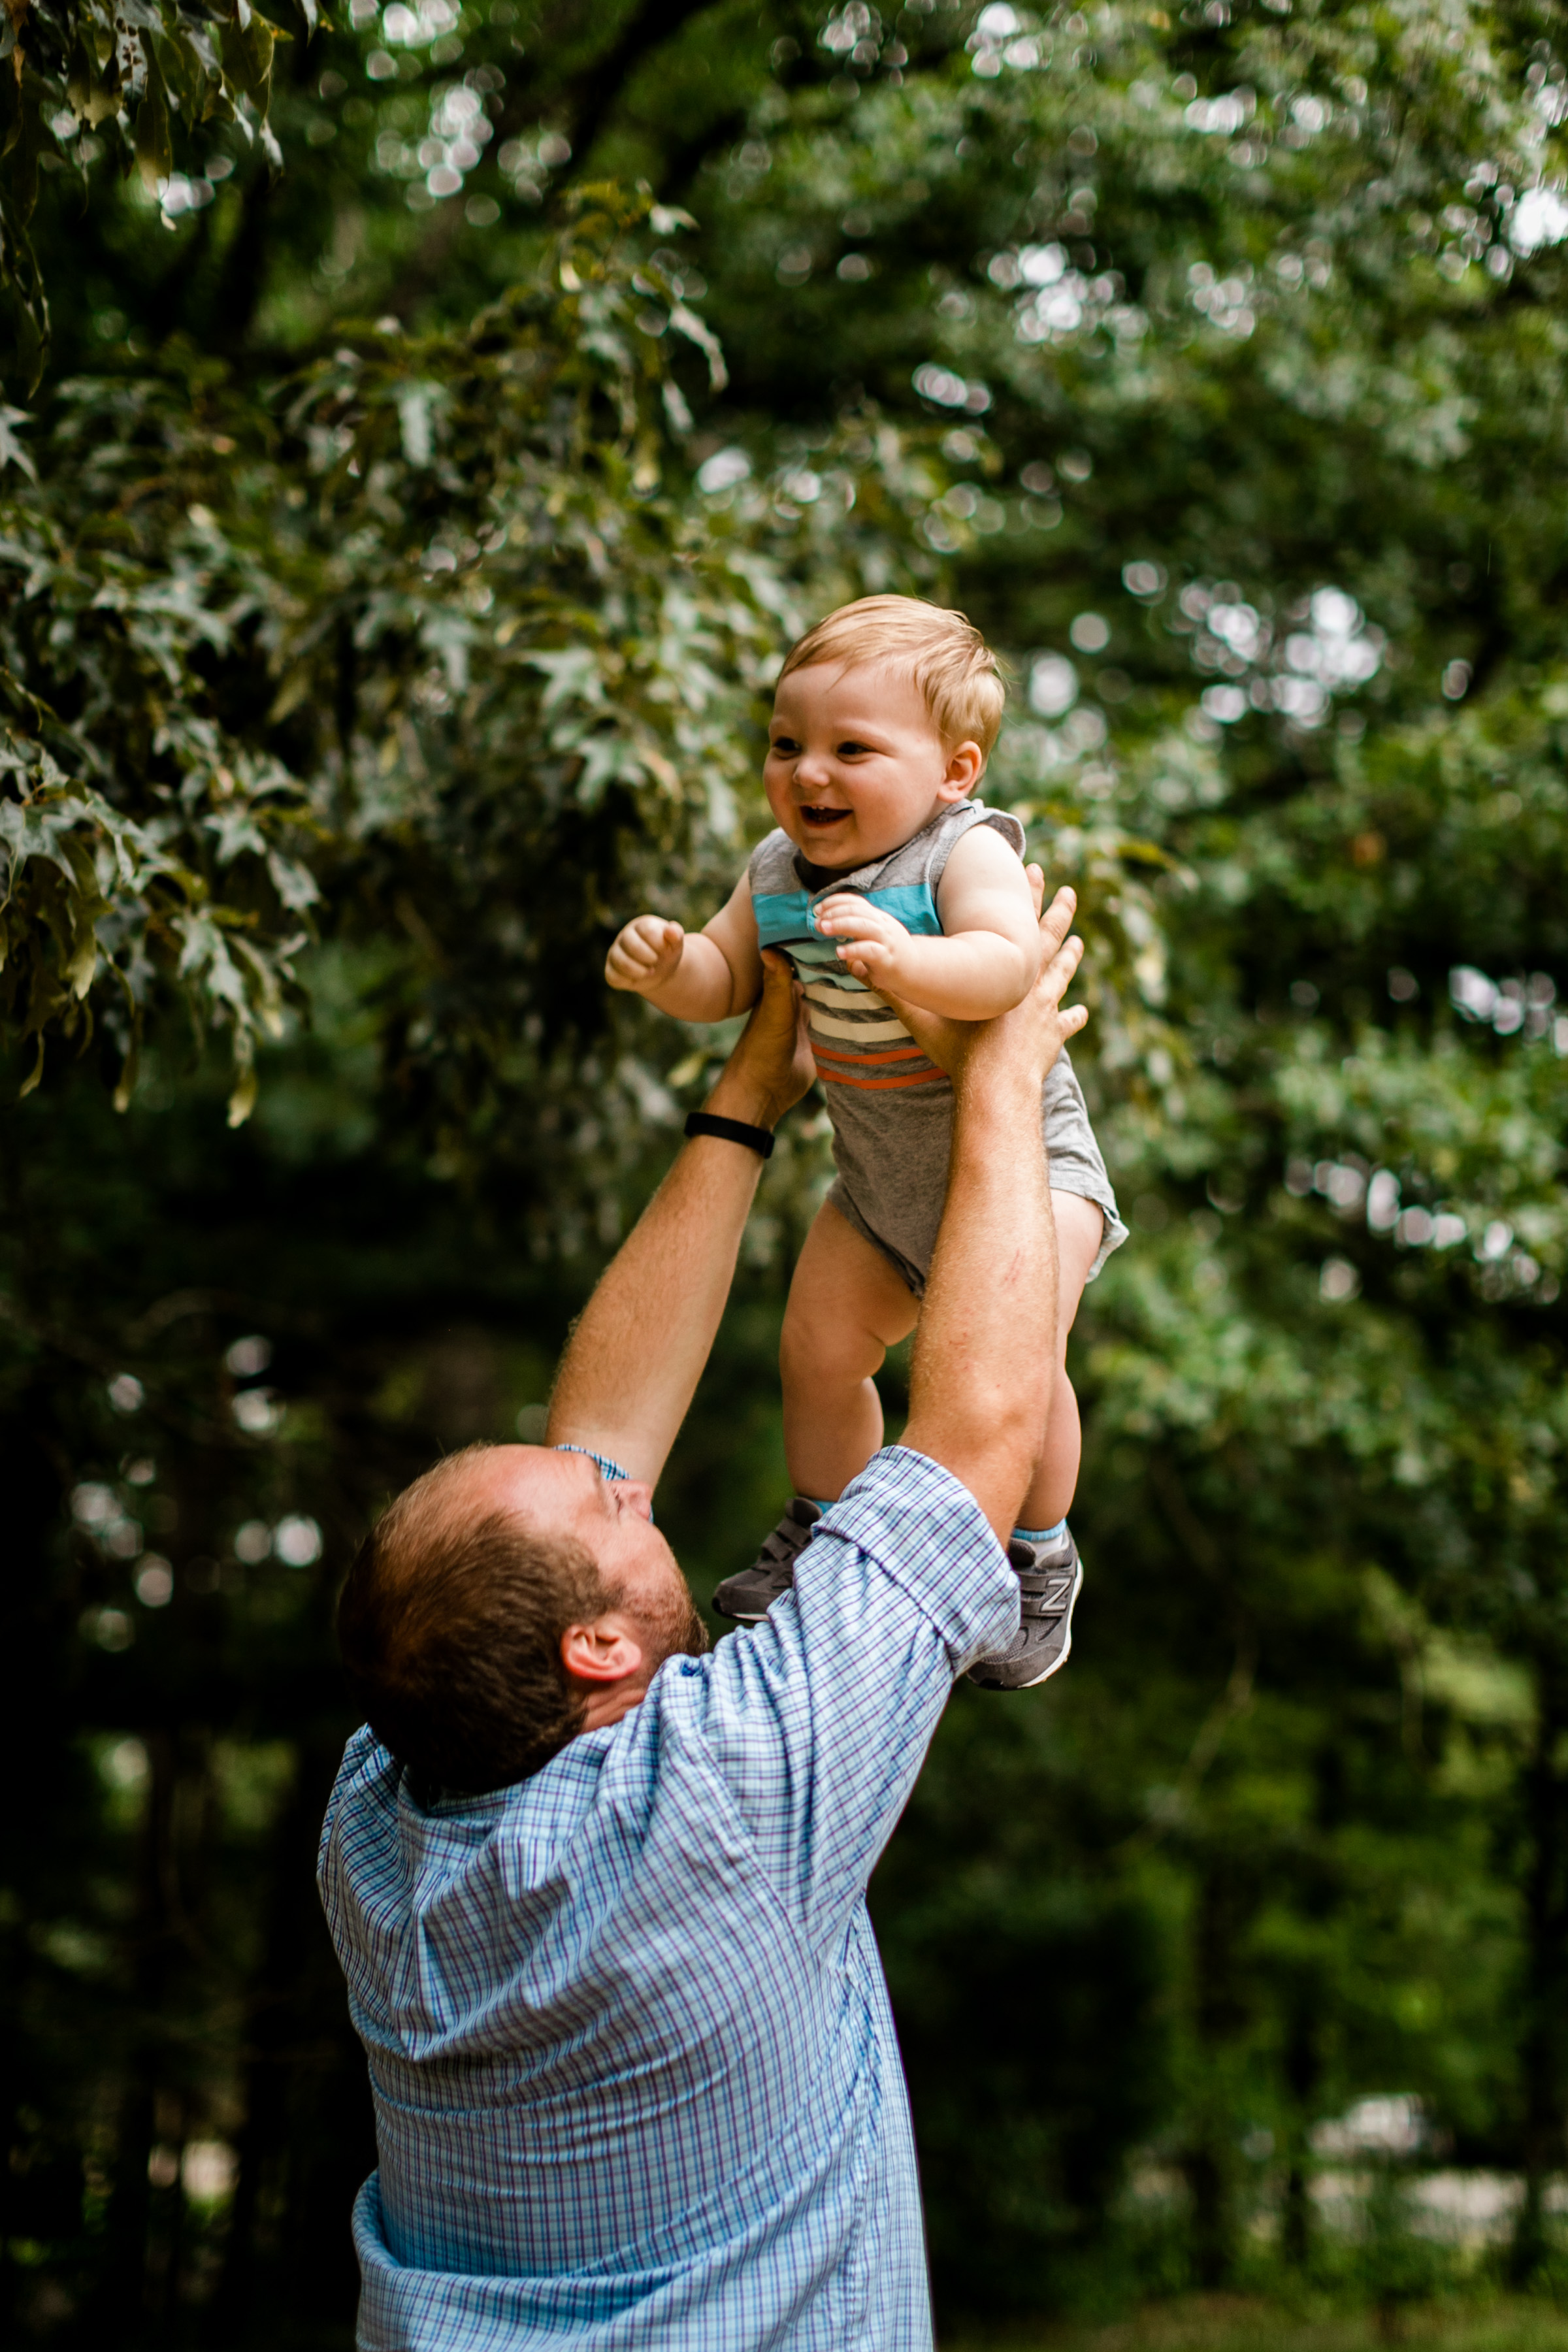 Durham Family Photographer | By G. Lin Photography | Outdoor portraits at Spruce Pine Lodge | Dad throwing son in the air